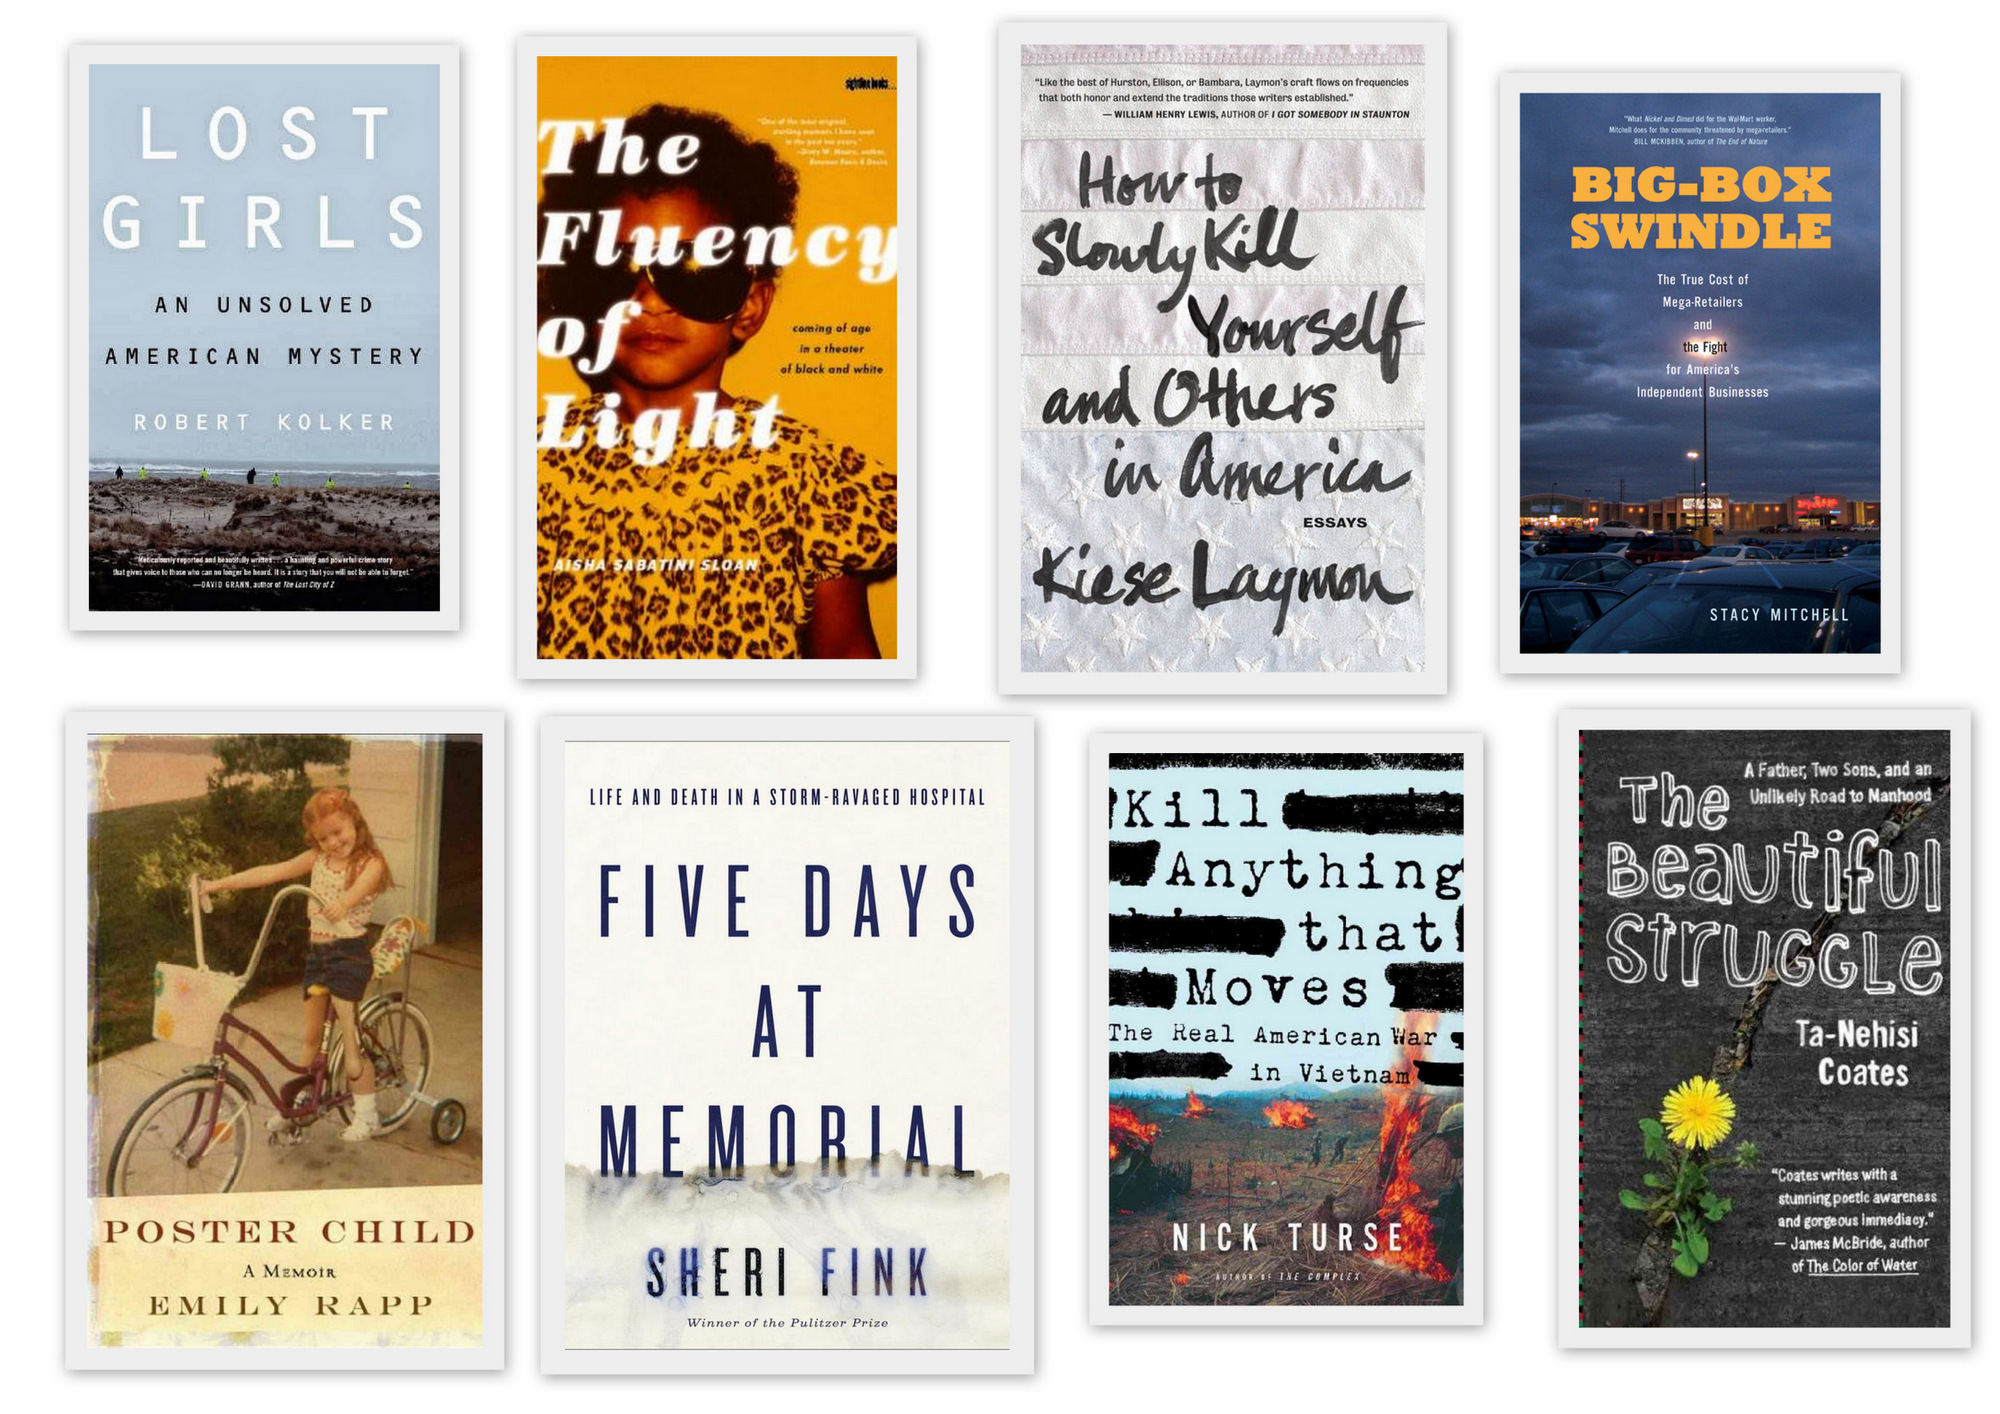 Things You'll Read And Love: A Gift Guide For Longform Lovers